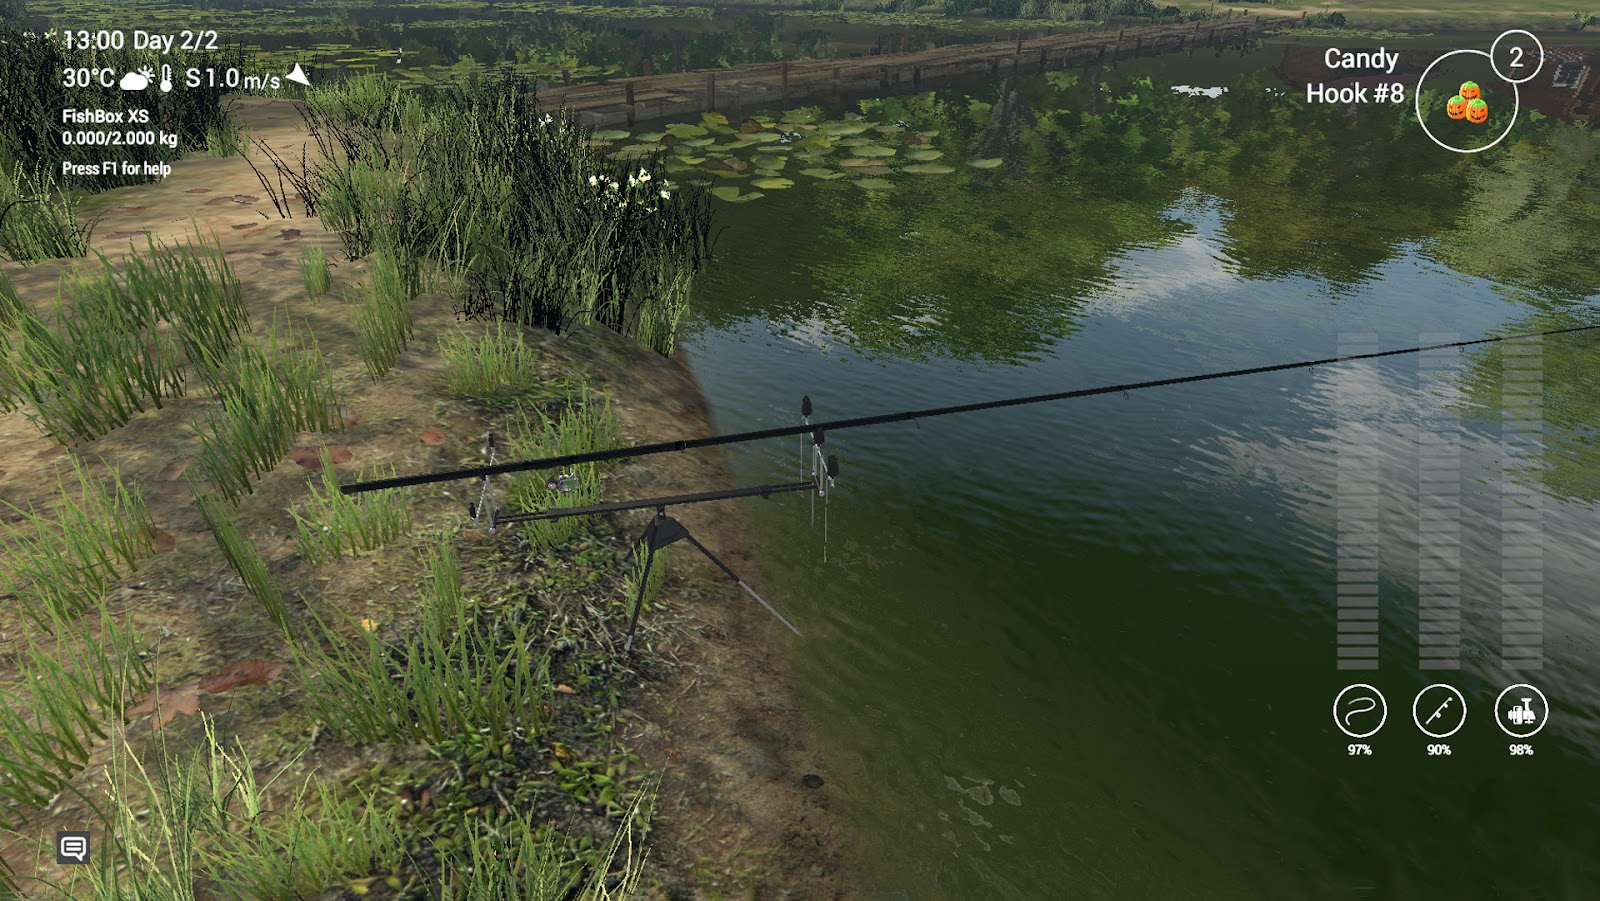 The Developers Diaries: New Fish and Waterways! - Developer